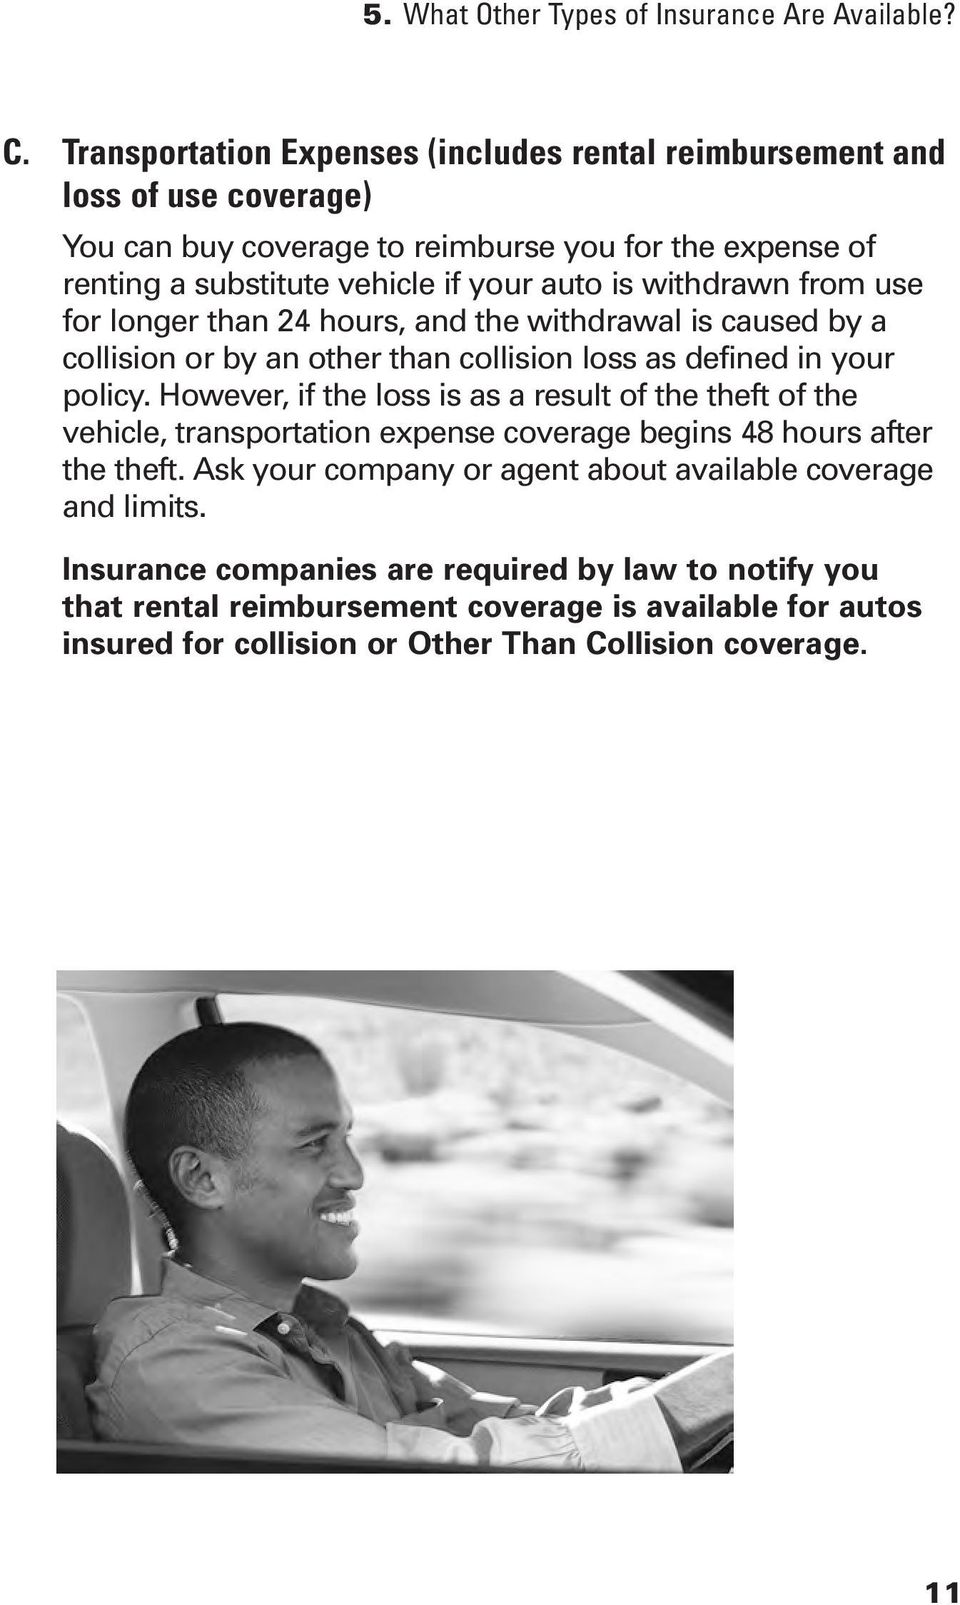 withdrawn from use for longer than 24 hours, and the withdrawal is caused by a collision or by an other than collision loss as defined in your policy.